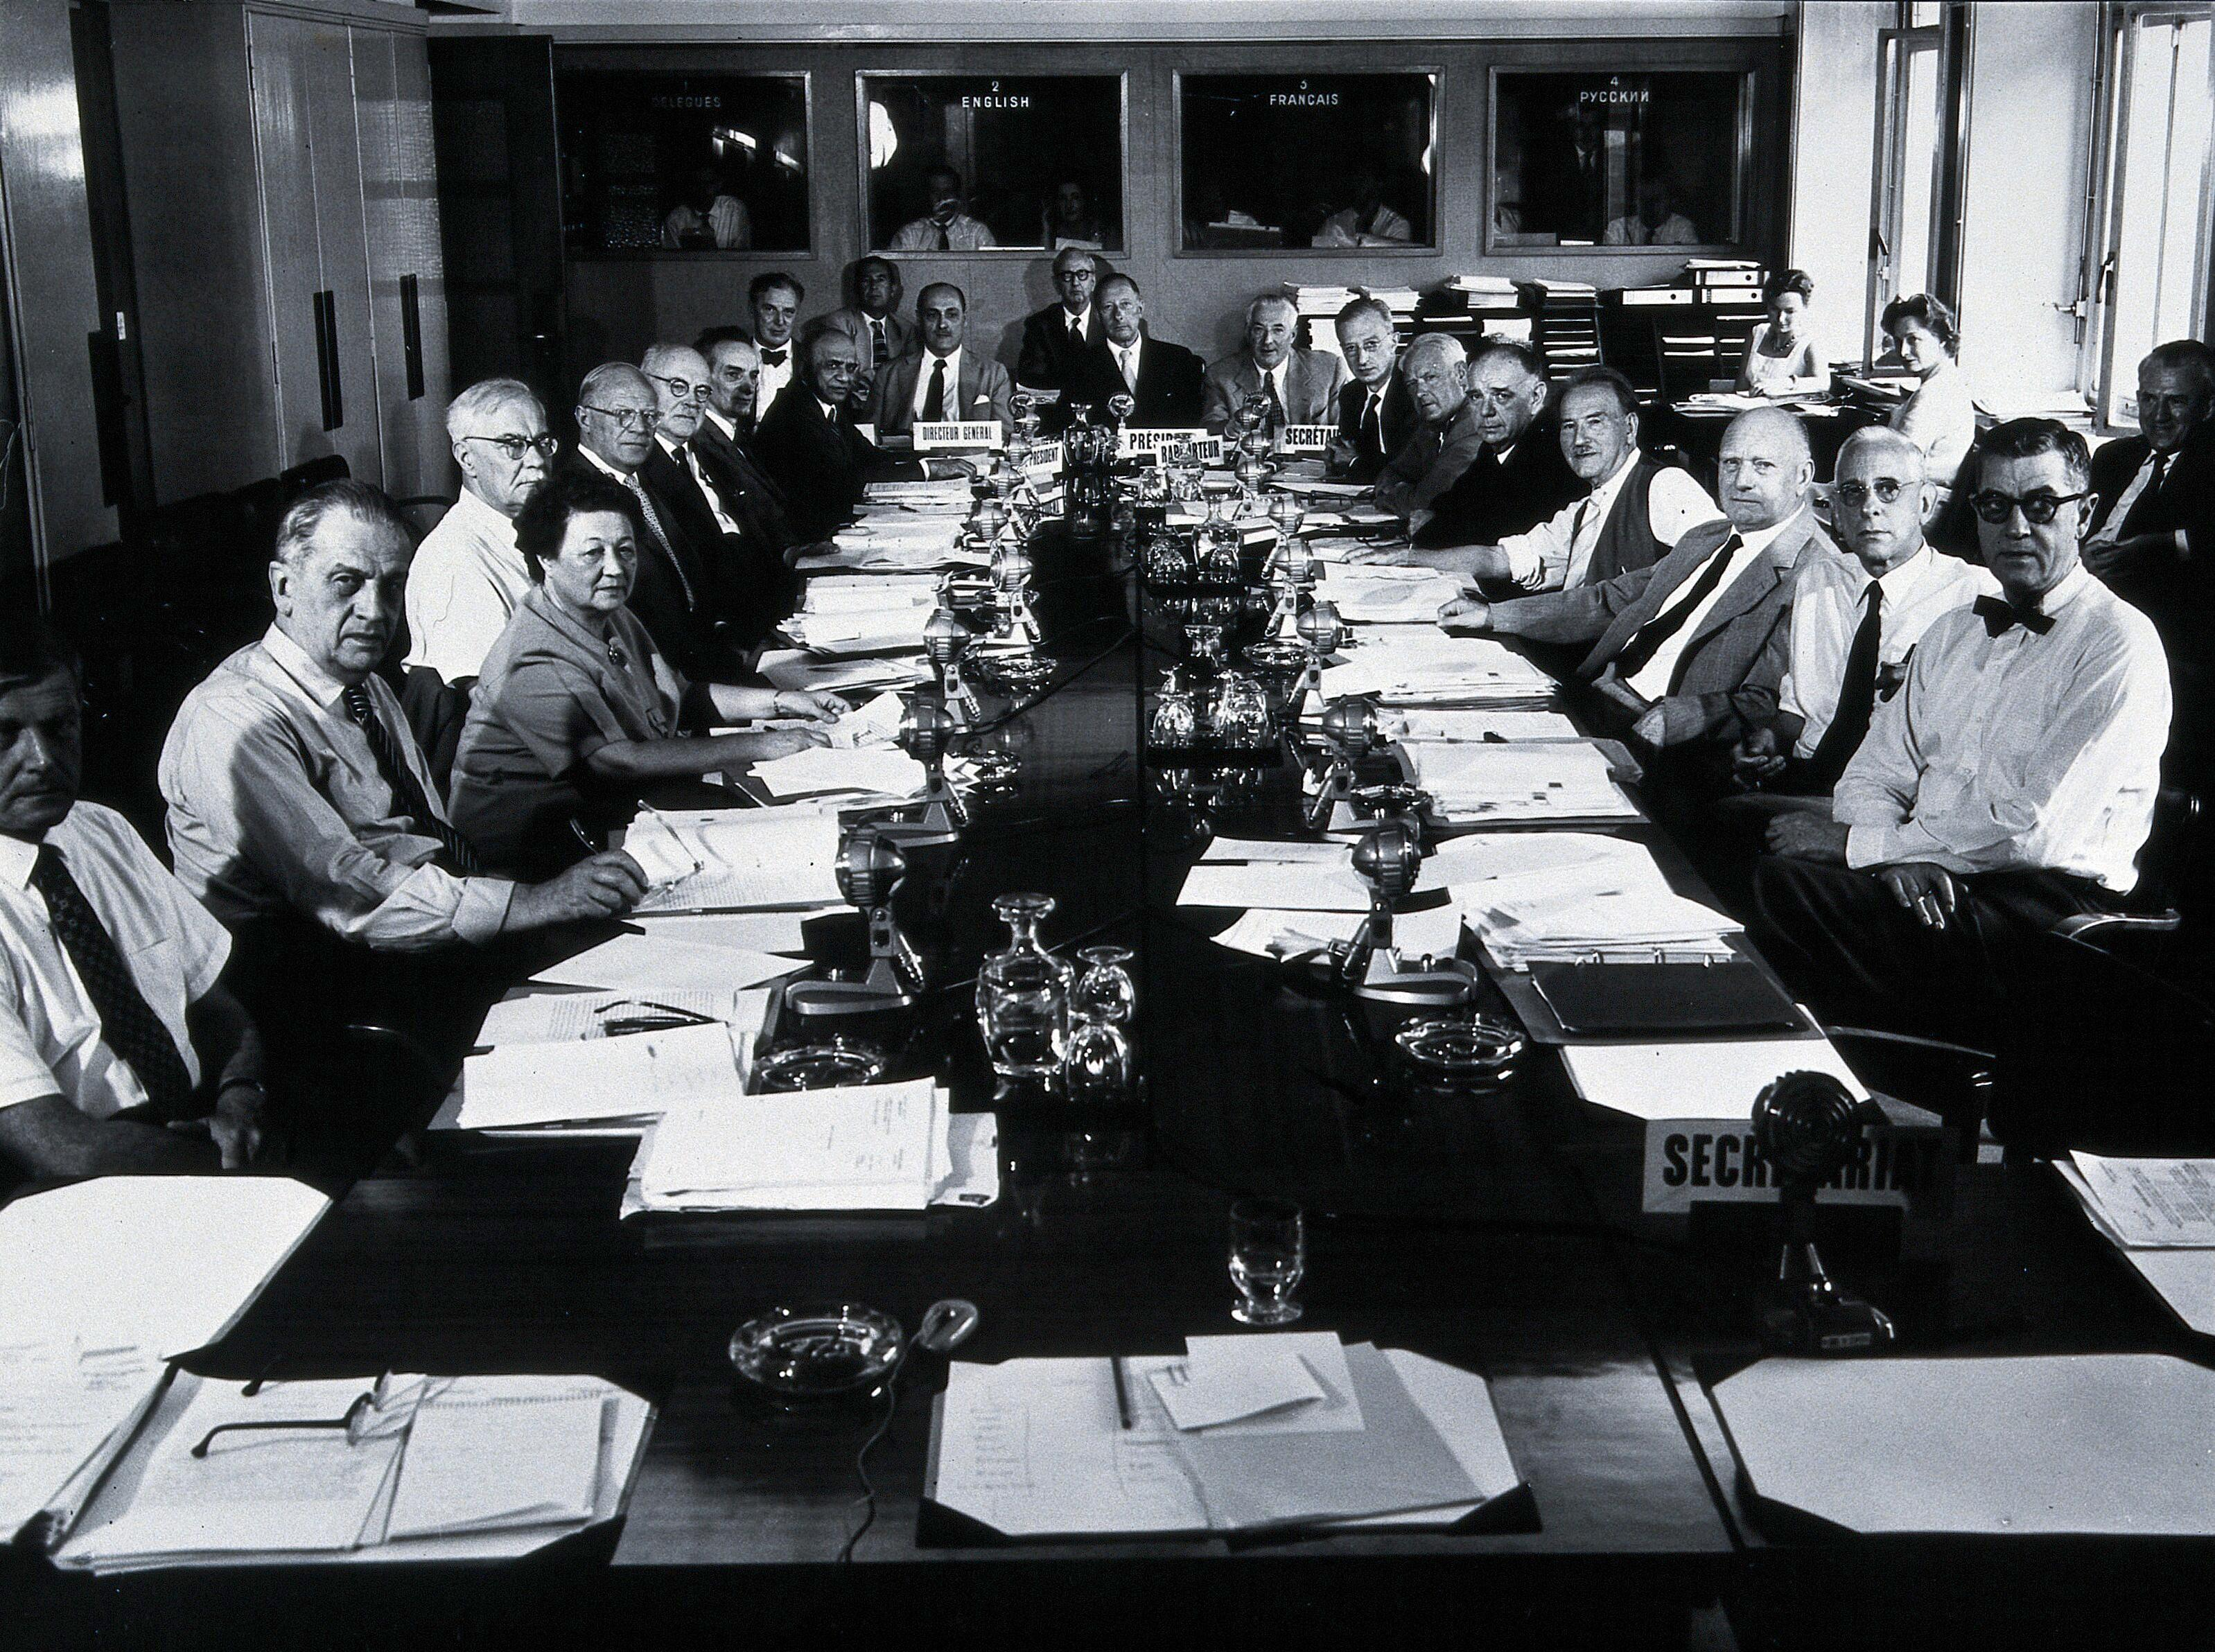 Black and white photograph of a group of people at a meeting in the 1960s